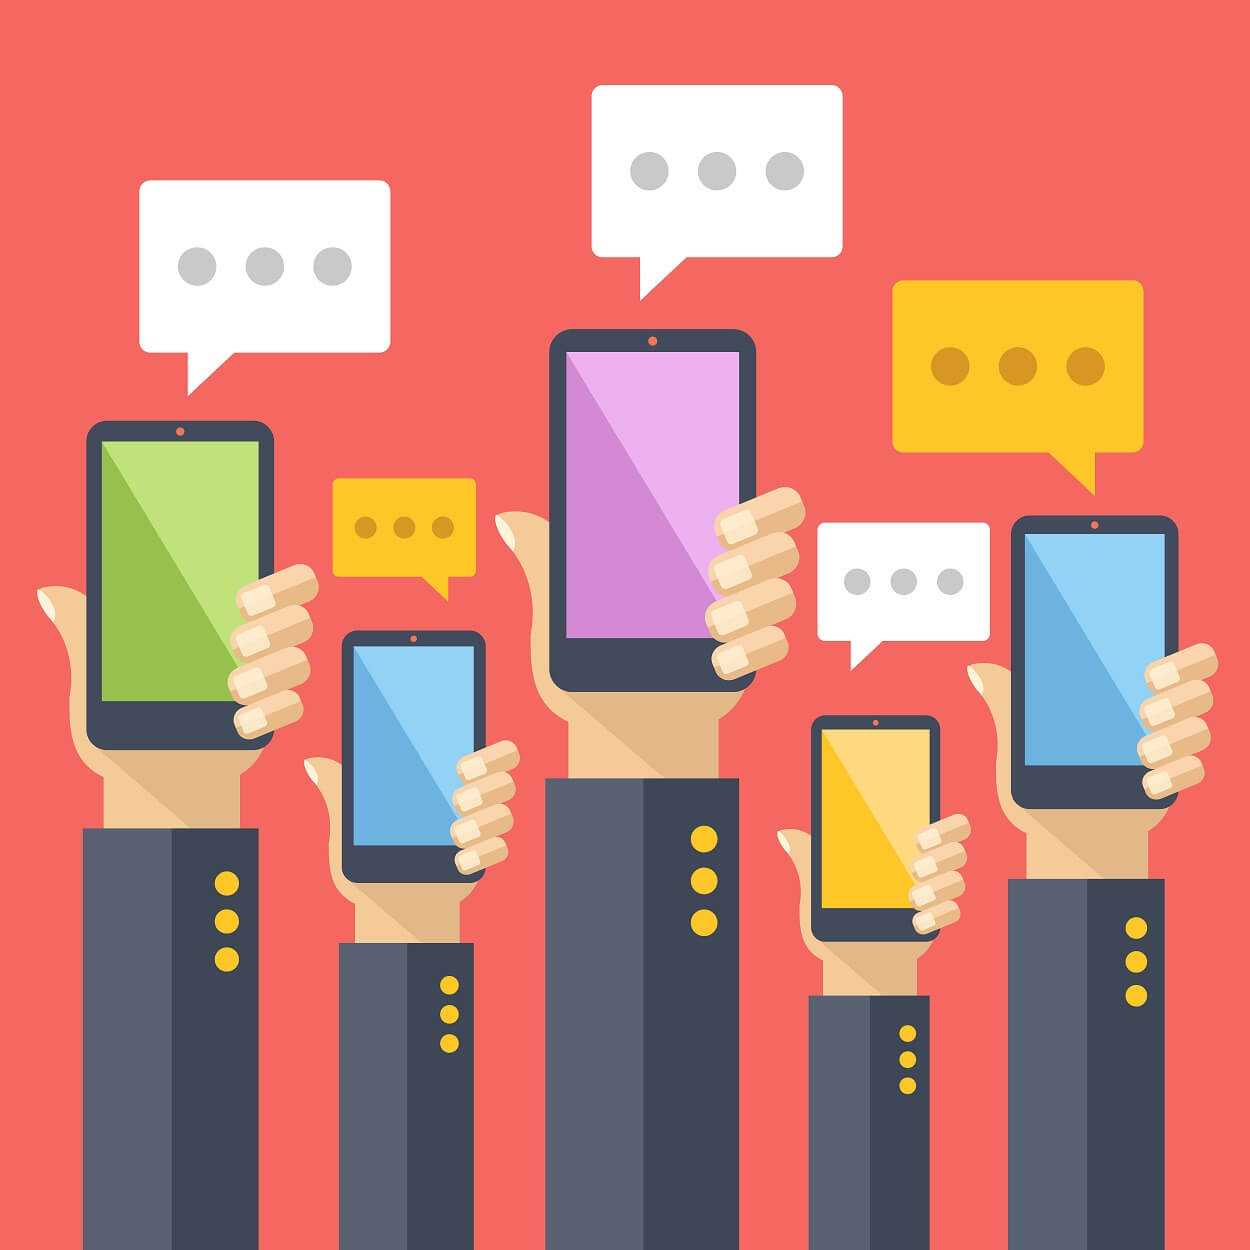 How Mortgage Marketers Can Start Text Message Marketing Without Annoying Their Prospects